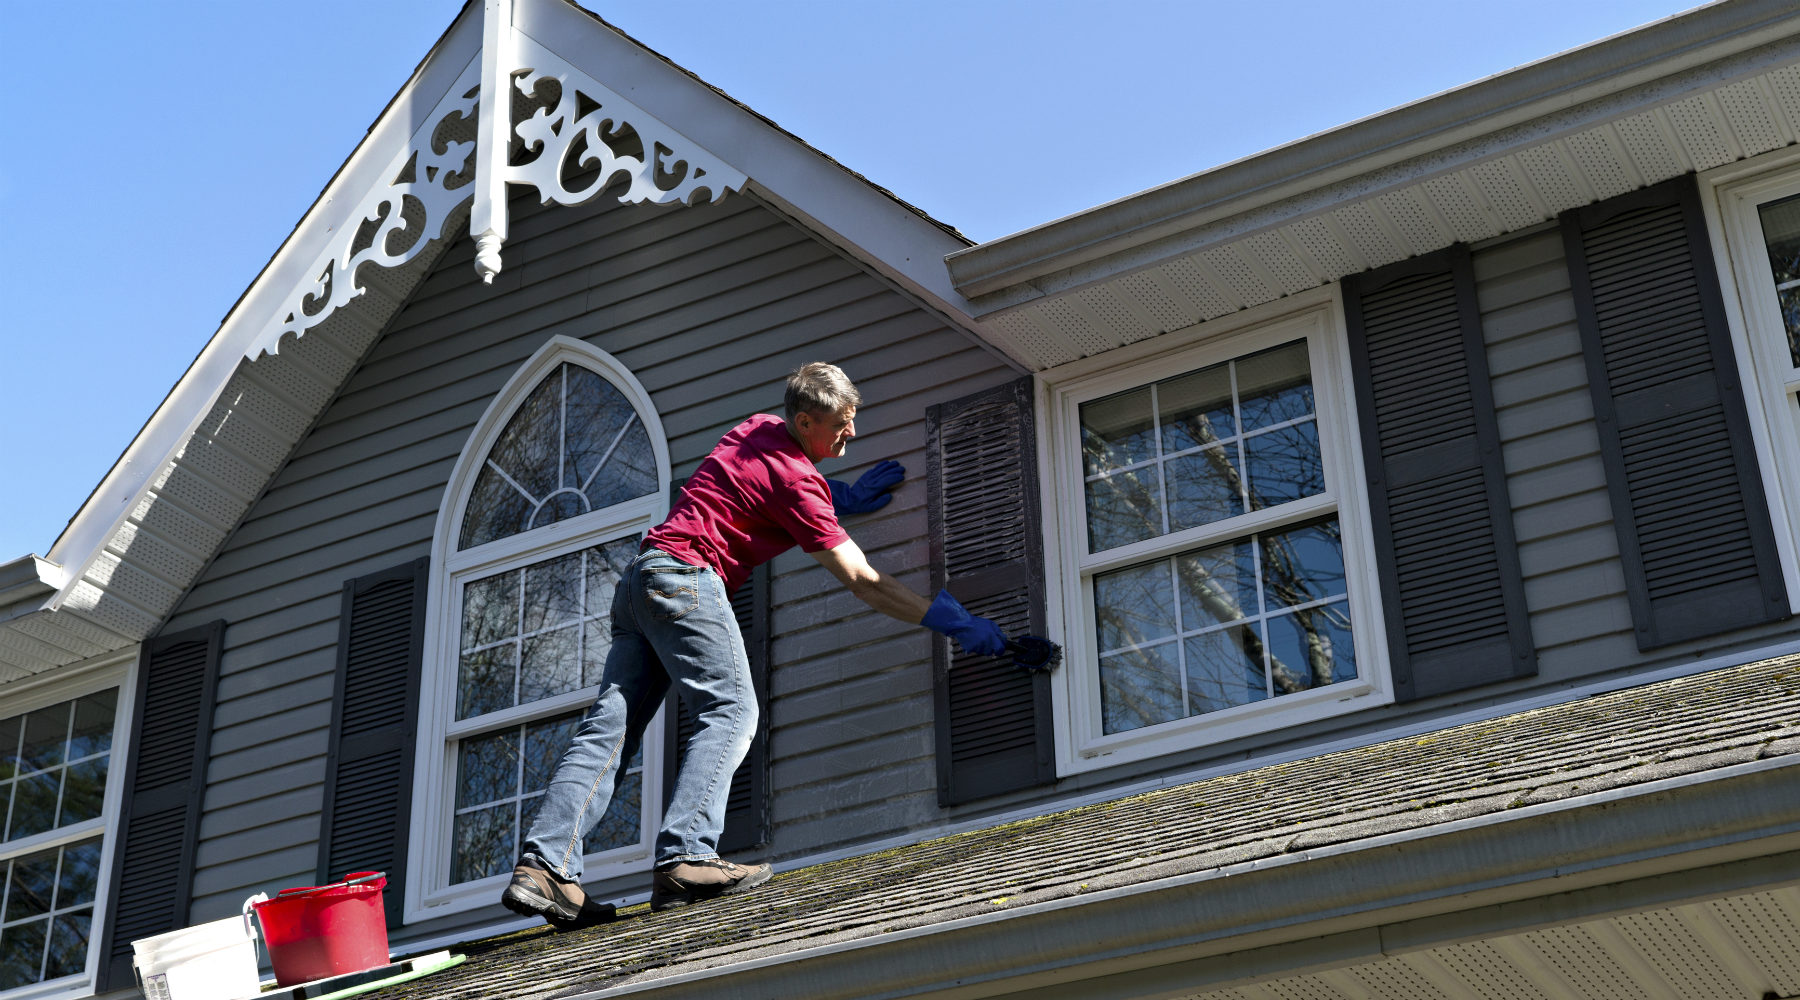 Handyman on roof cleaning shutters